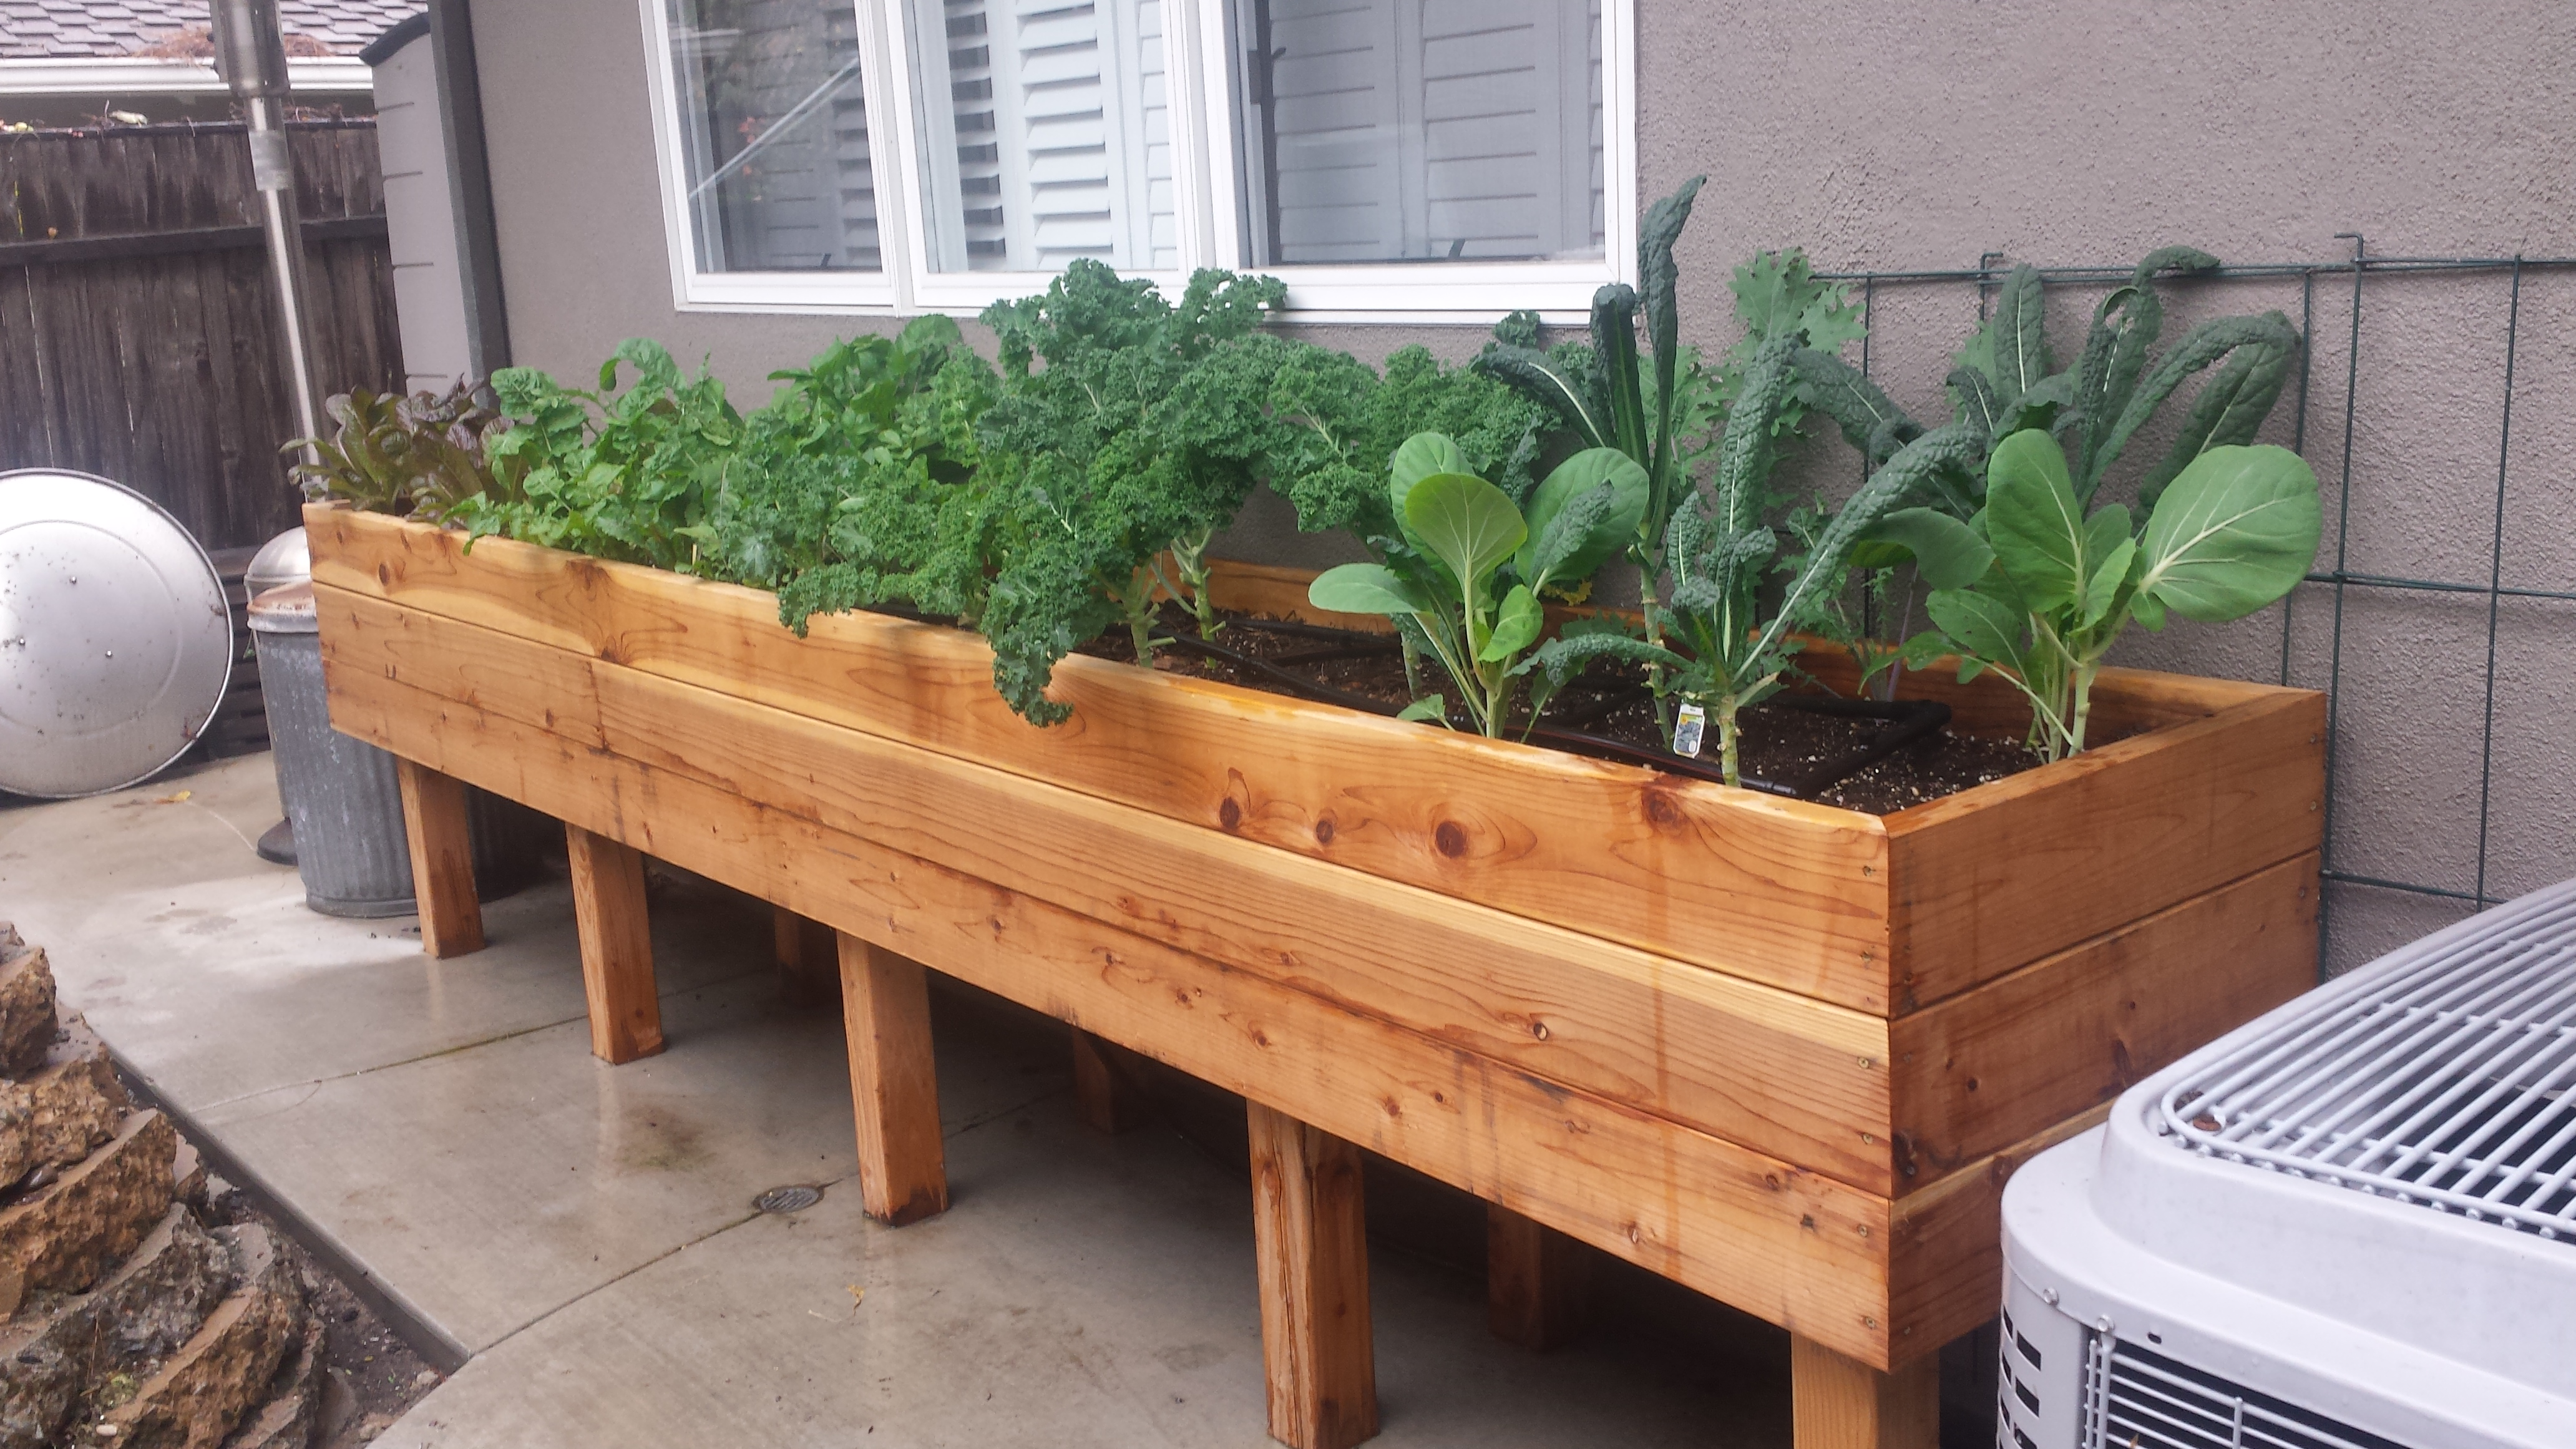 A raised bed garden makes planting easy